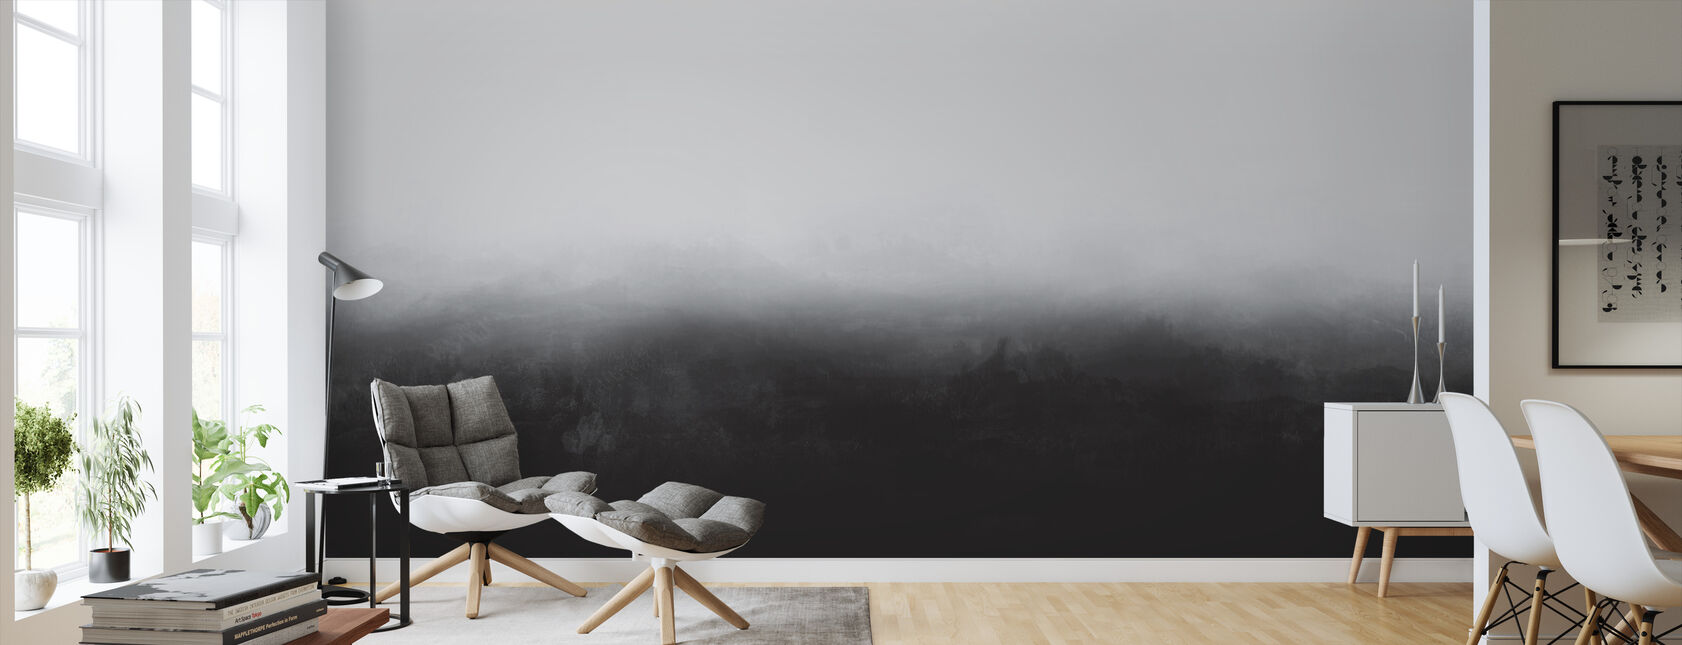 Black-and-white wall murals